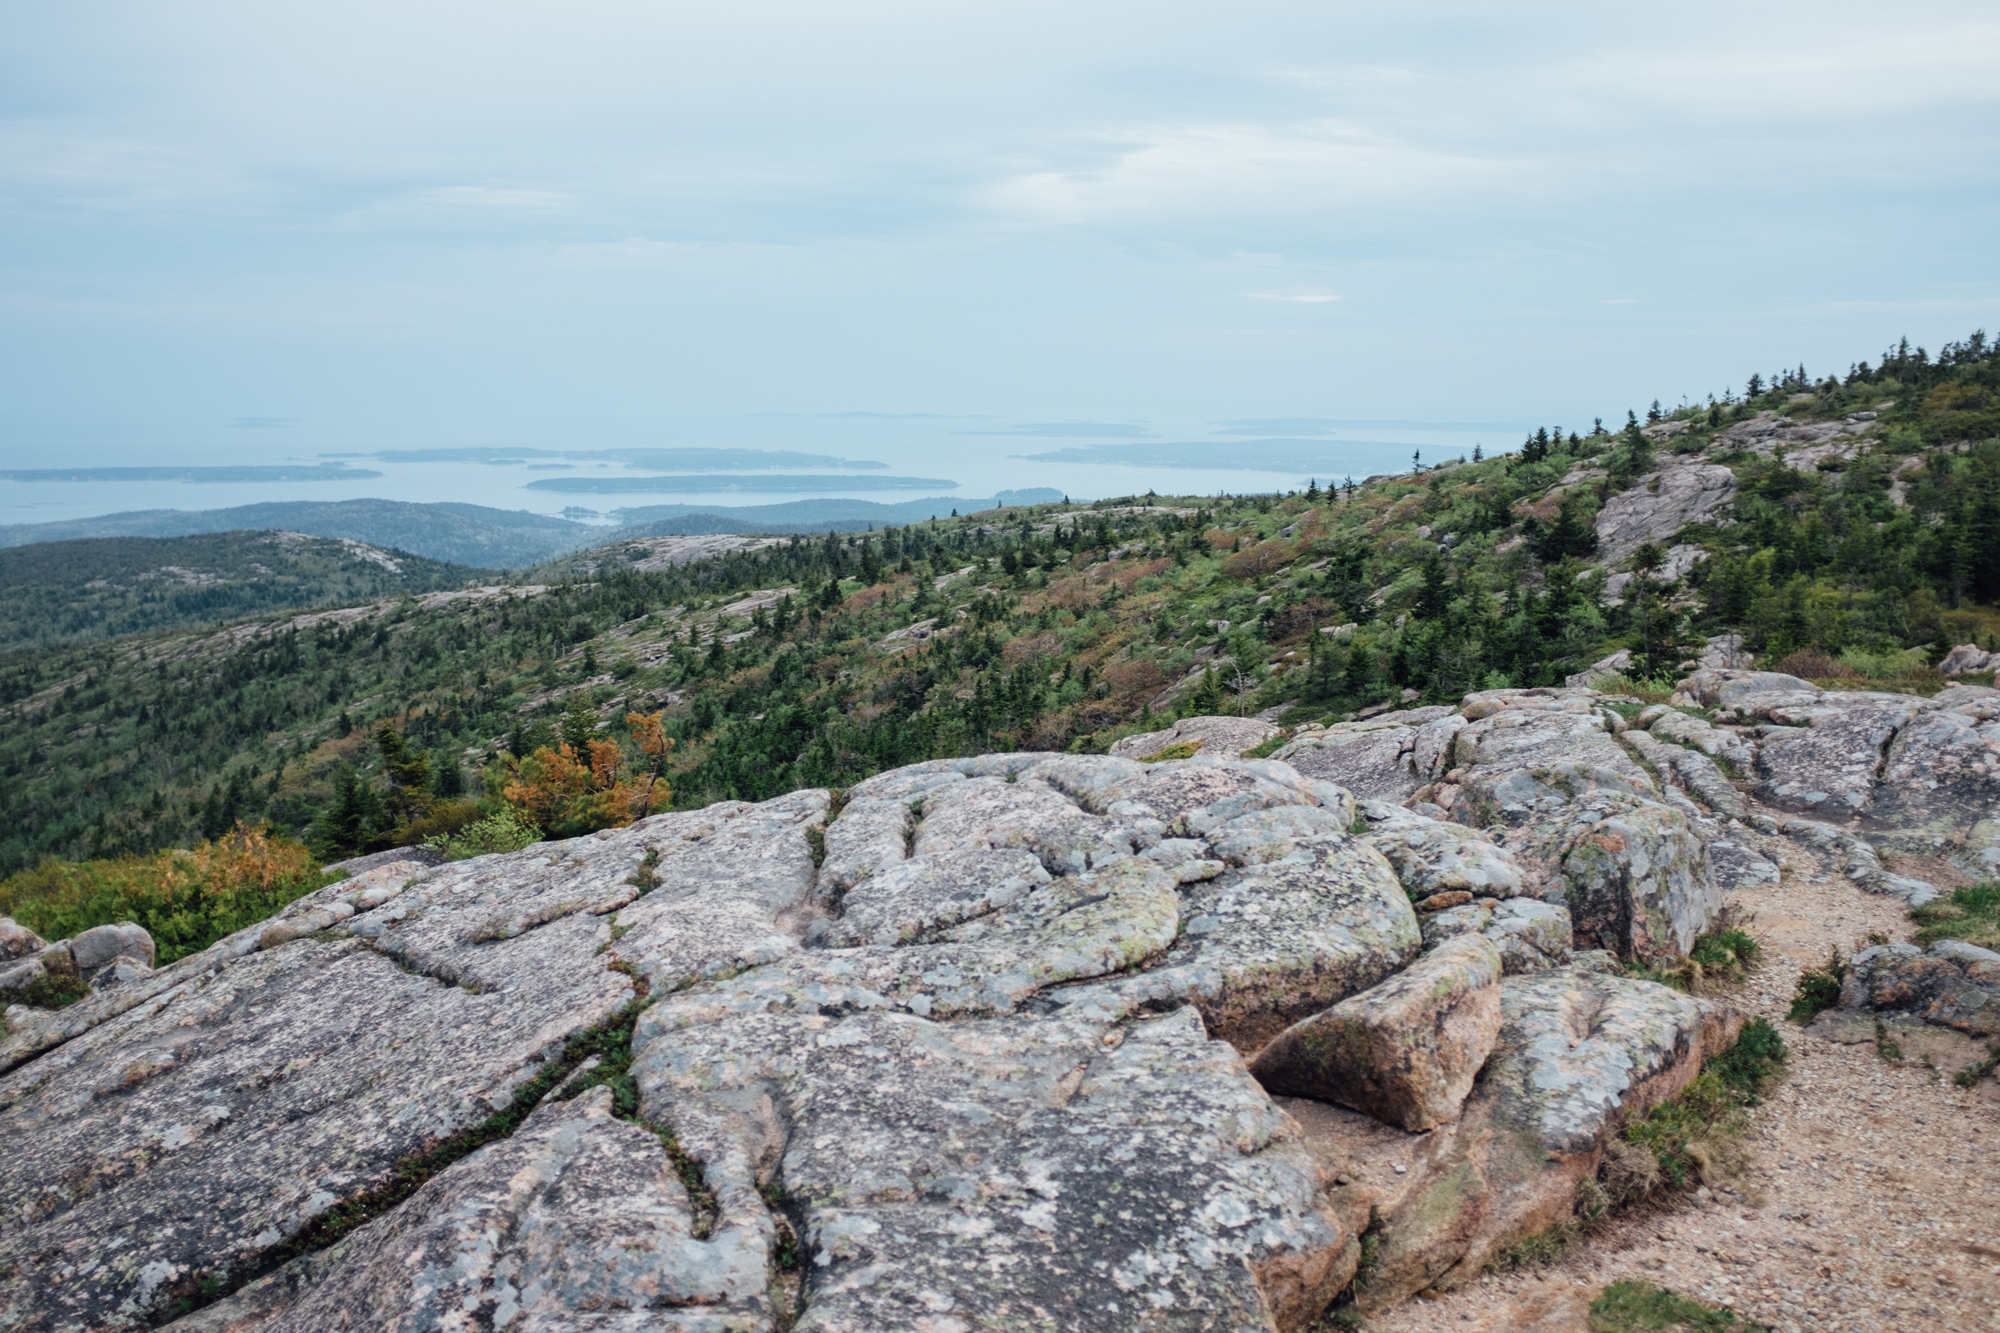 The view from the top of Cadillac Mountain.